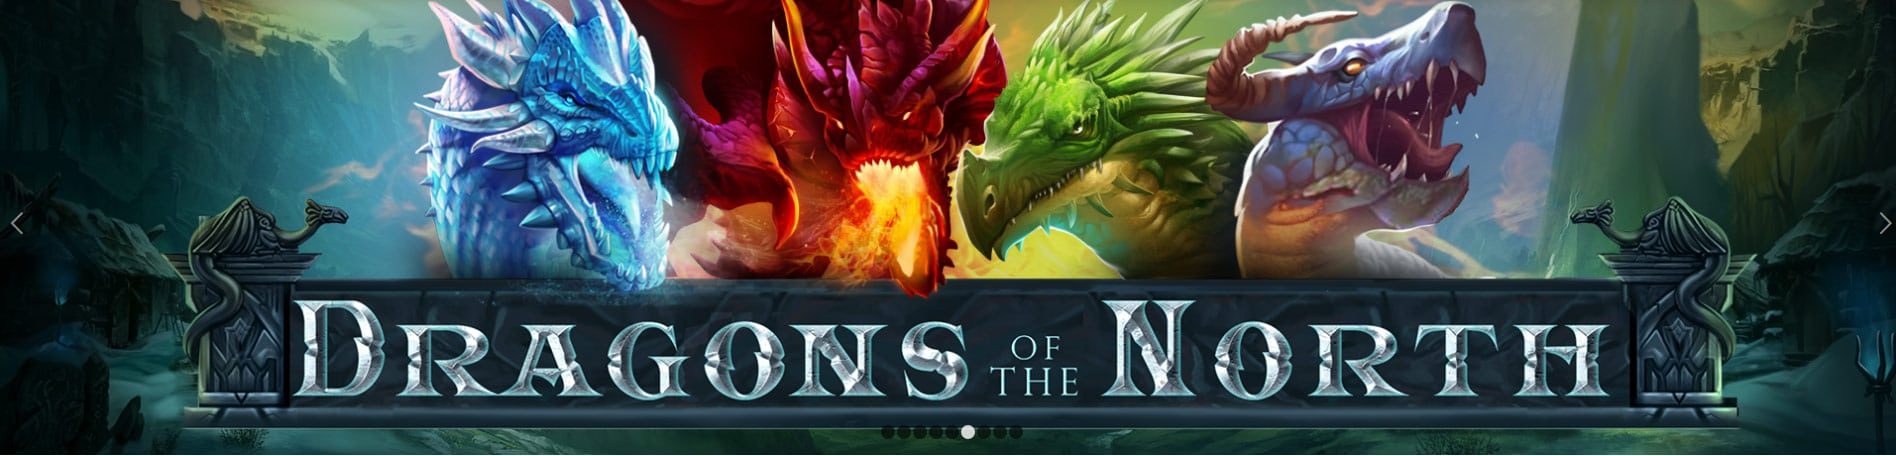 Dragons of the north screen shot